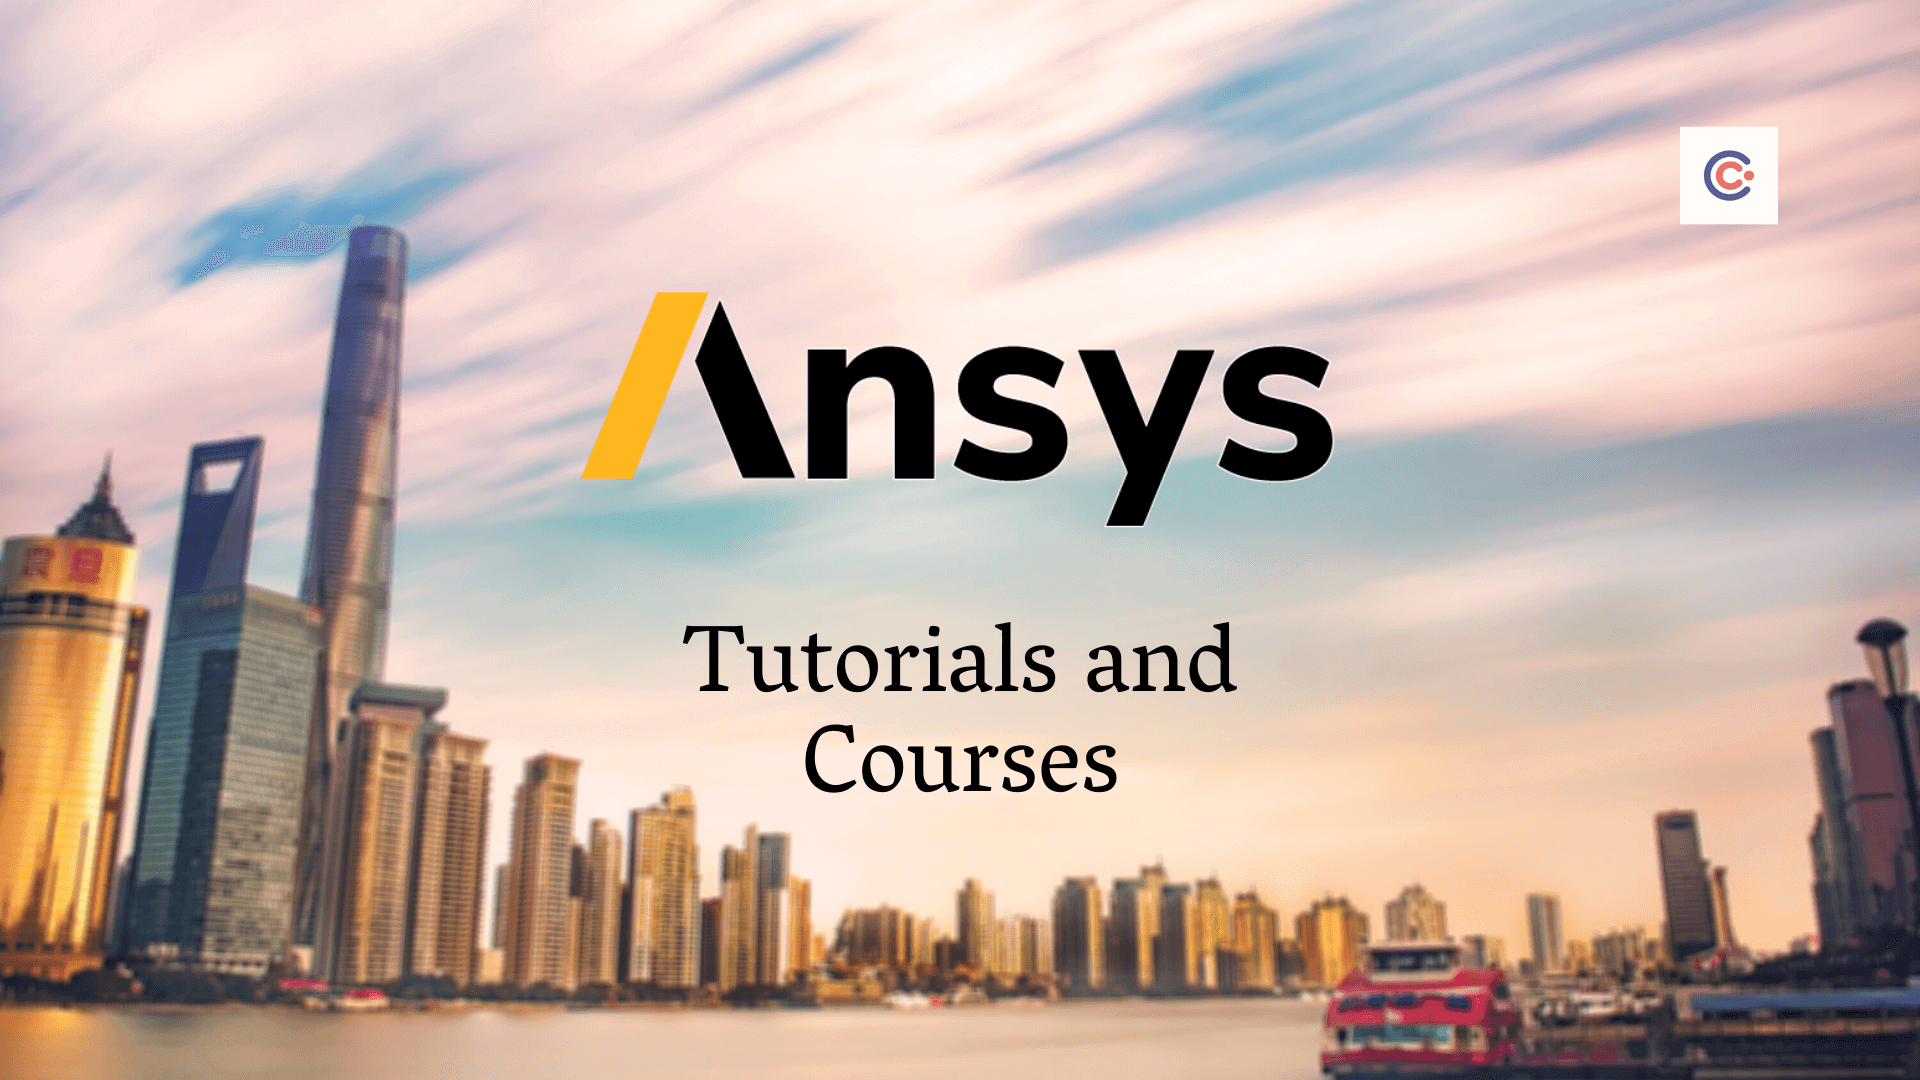 5 Best Ansys Tutorials and Courses - Learn Ansys Online